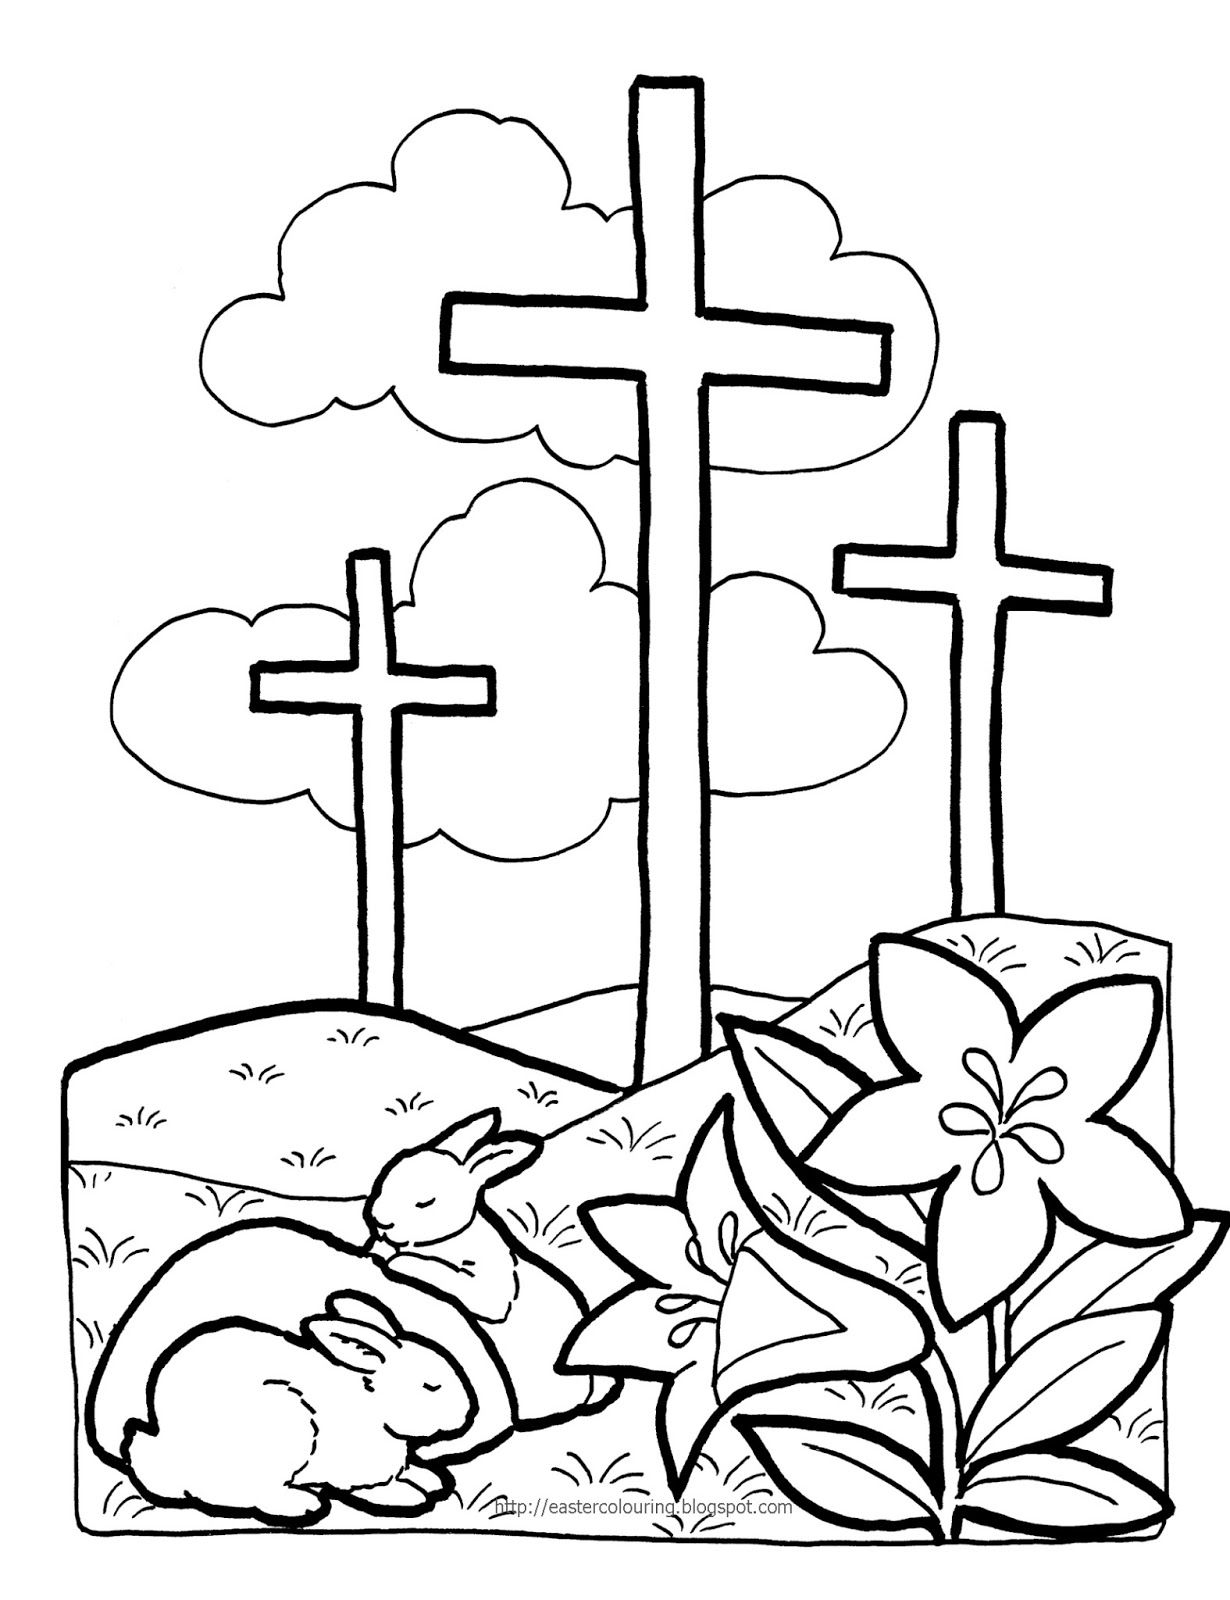 Pin On Crosses